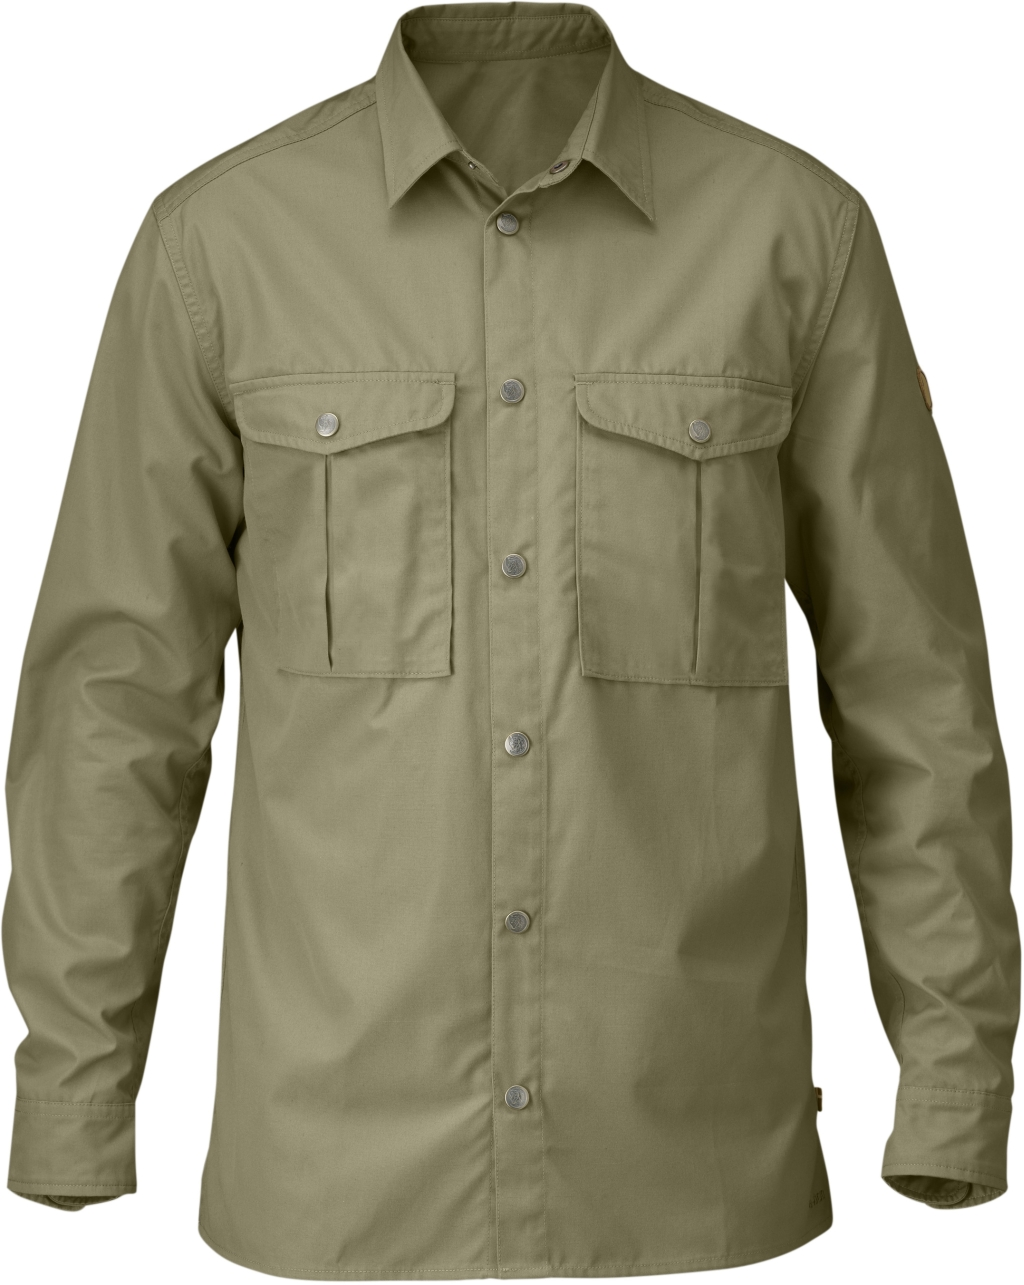 FjallRaven Greenland Shirt Light Khaki-30